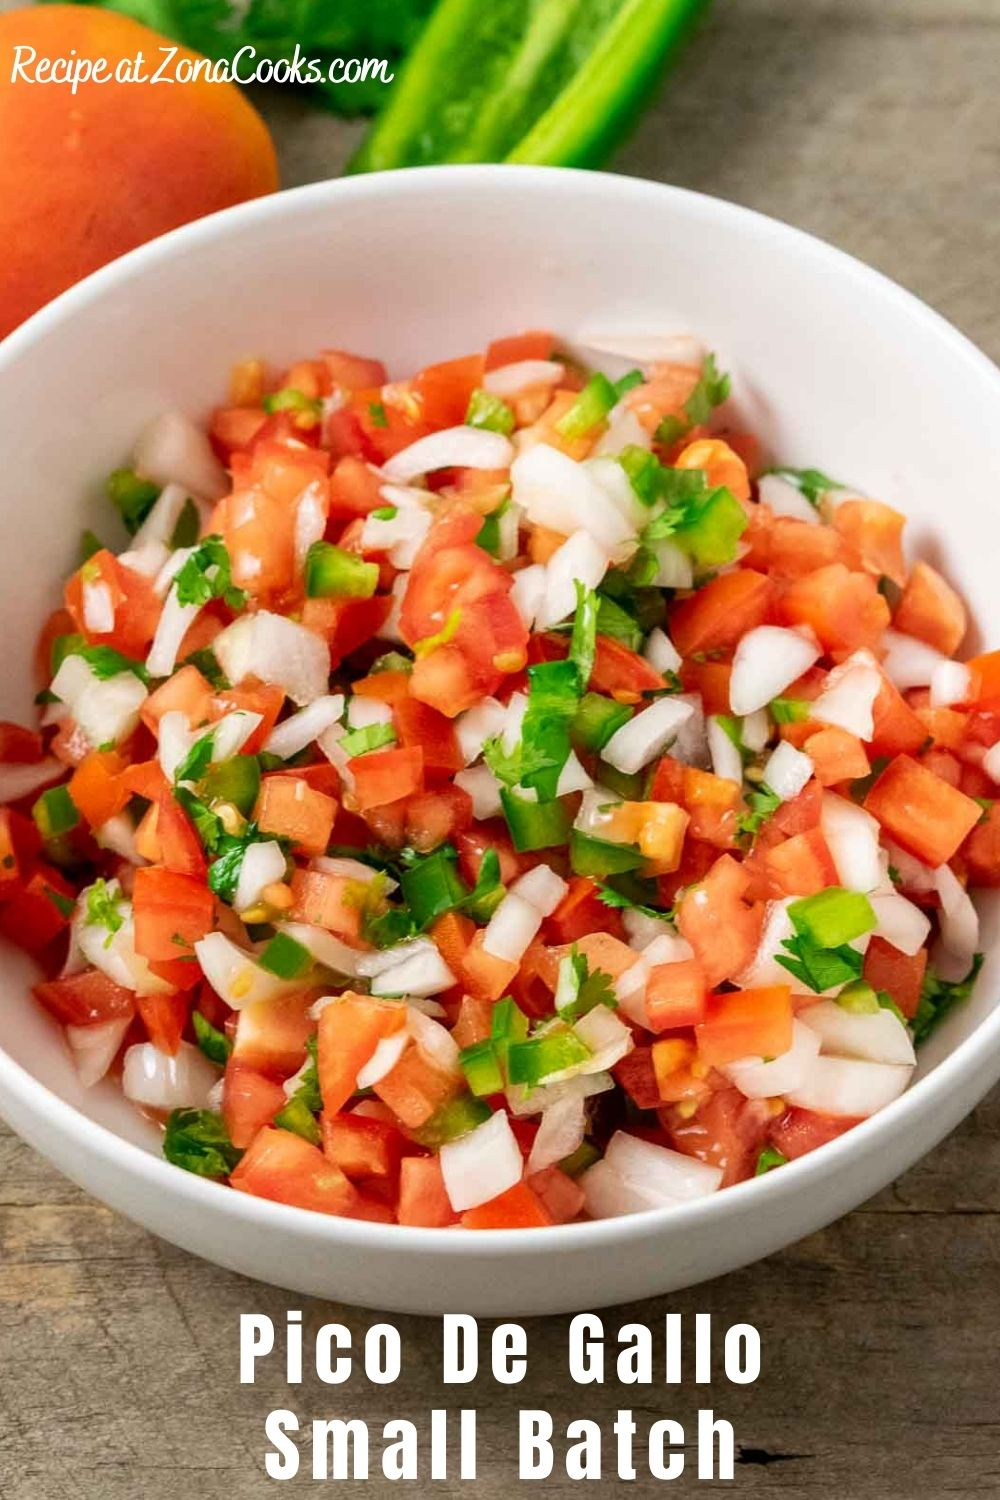 chopped tomato, onion, and jalapeño peppers , with salt, lime juice, and cilantro mixed in a bowl and text reading recipe at zonacooks.com pico de gallo small batch.